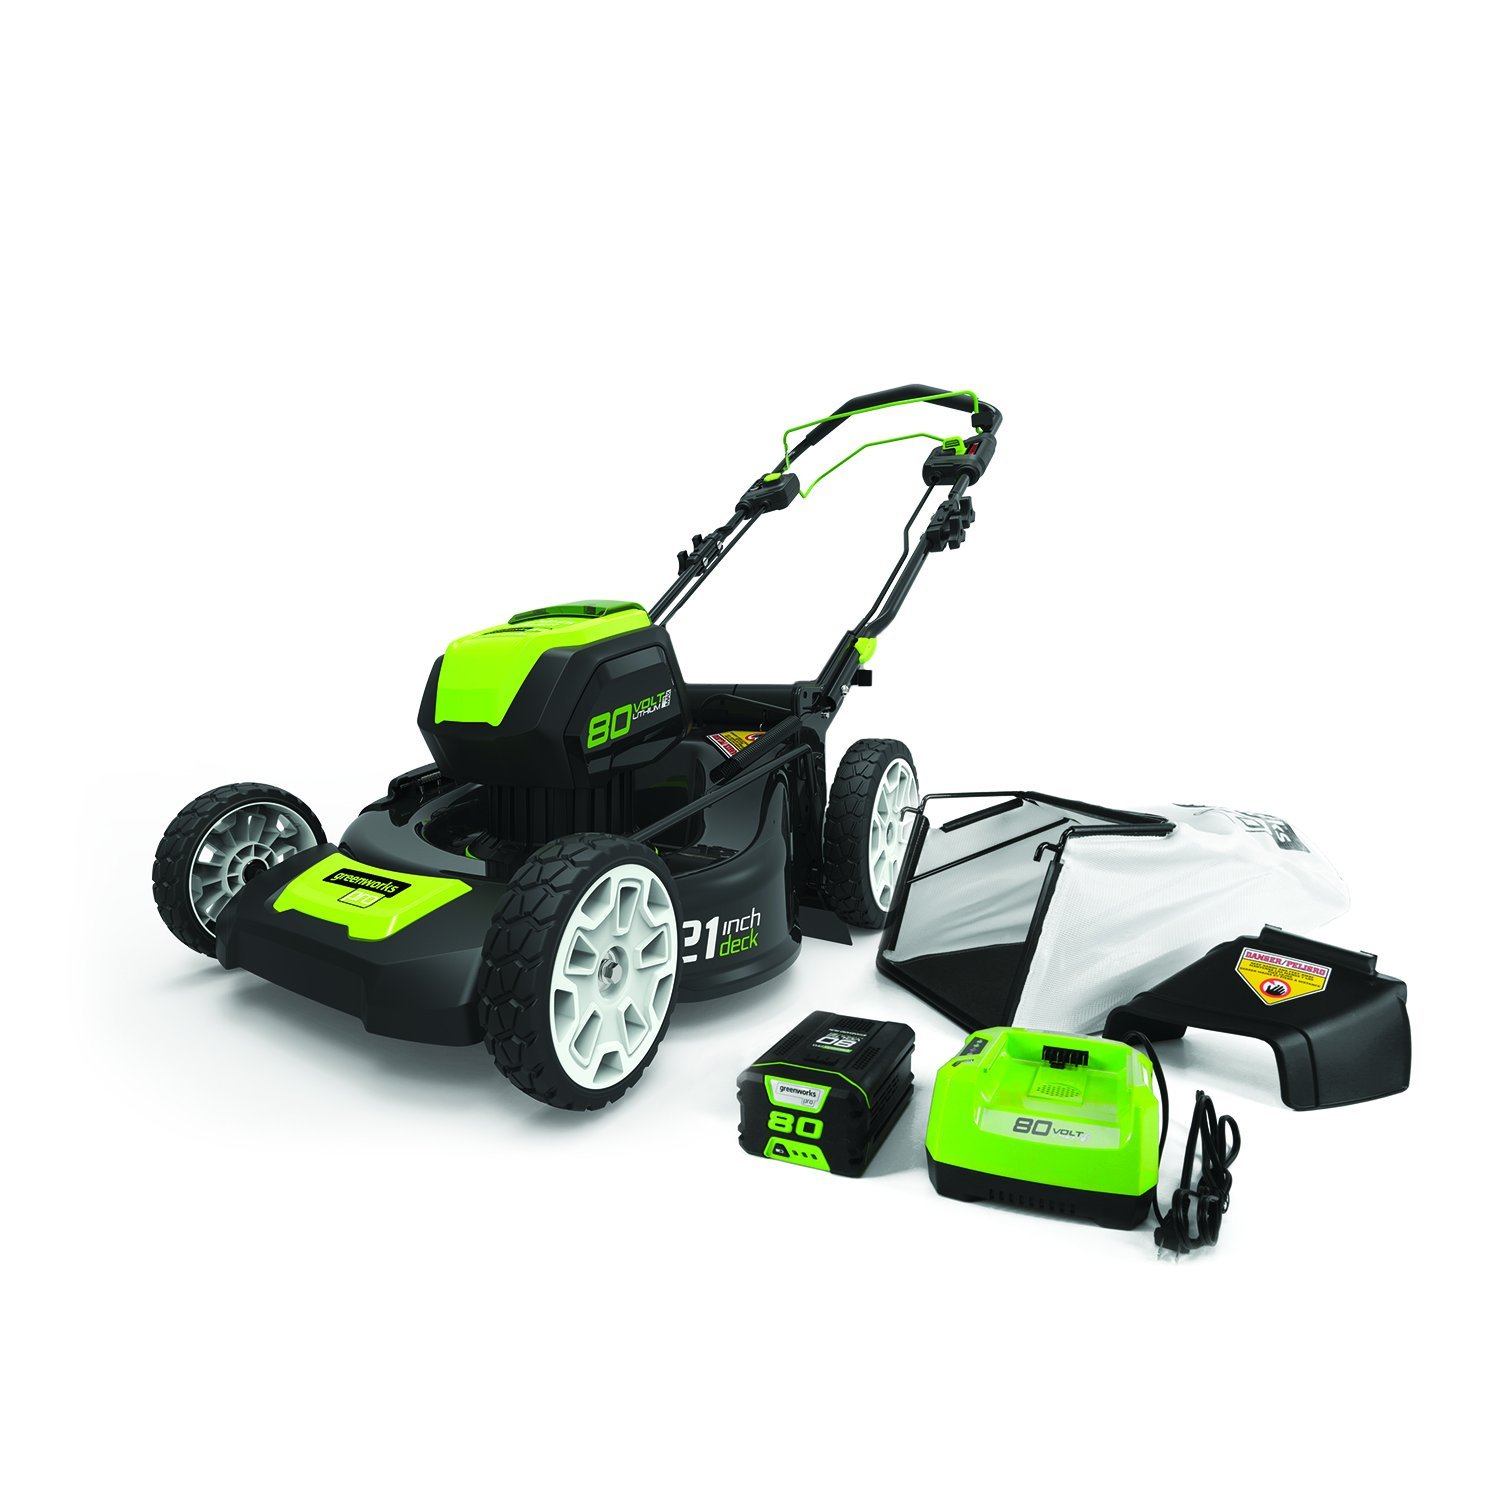 Greenworks Self Propelled Lawn Mower